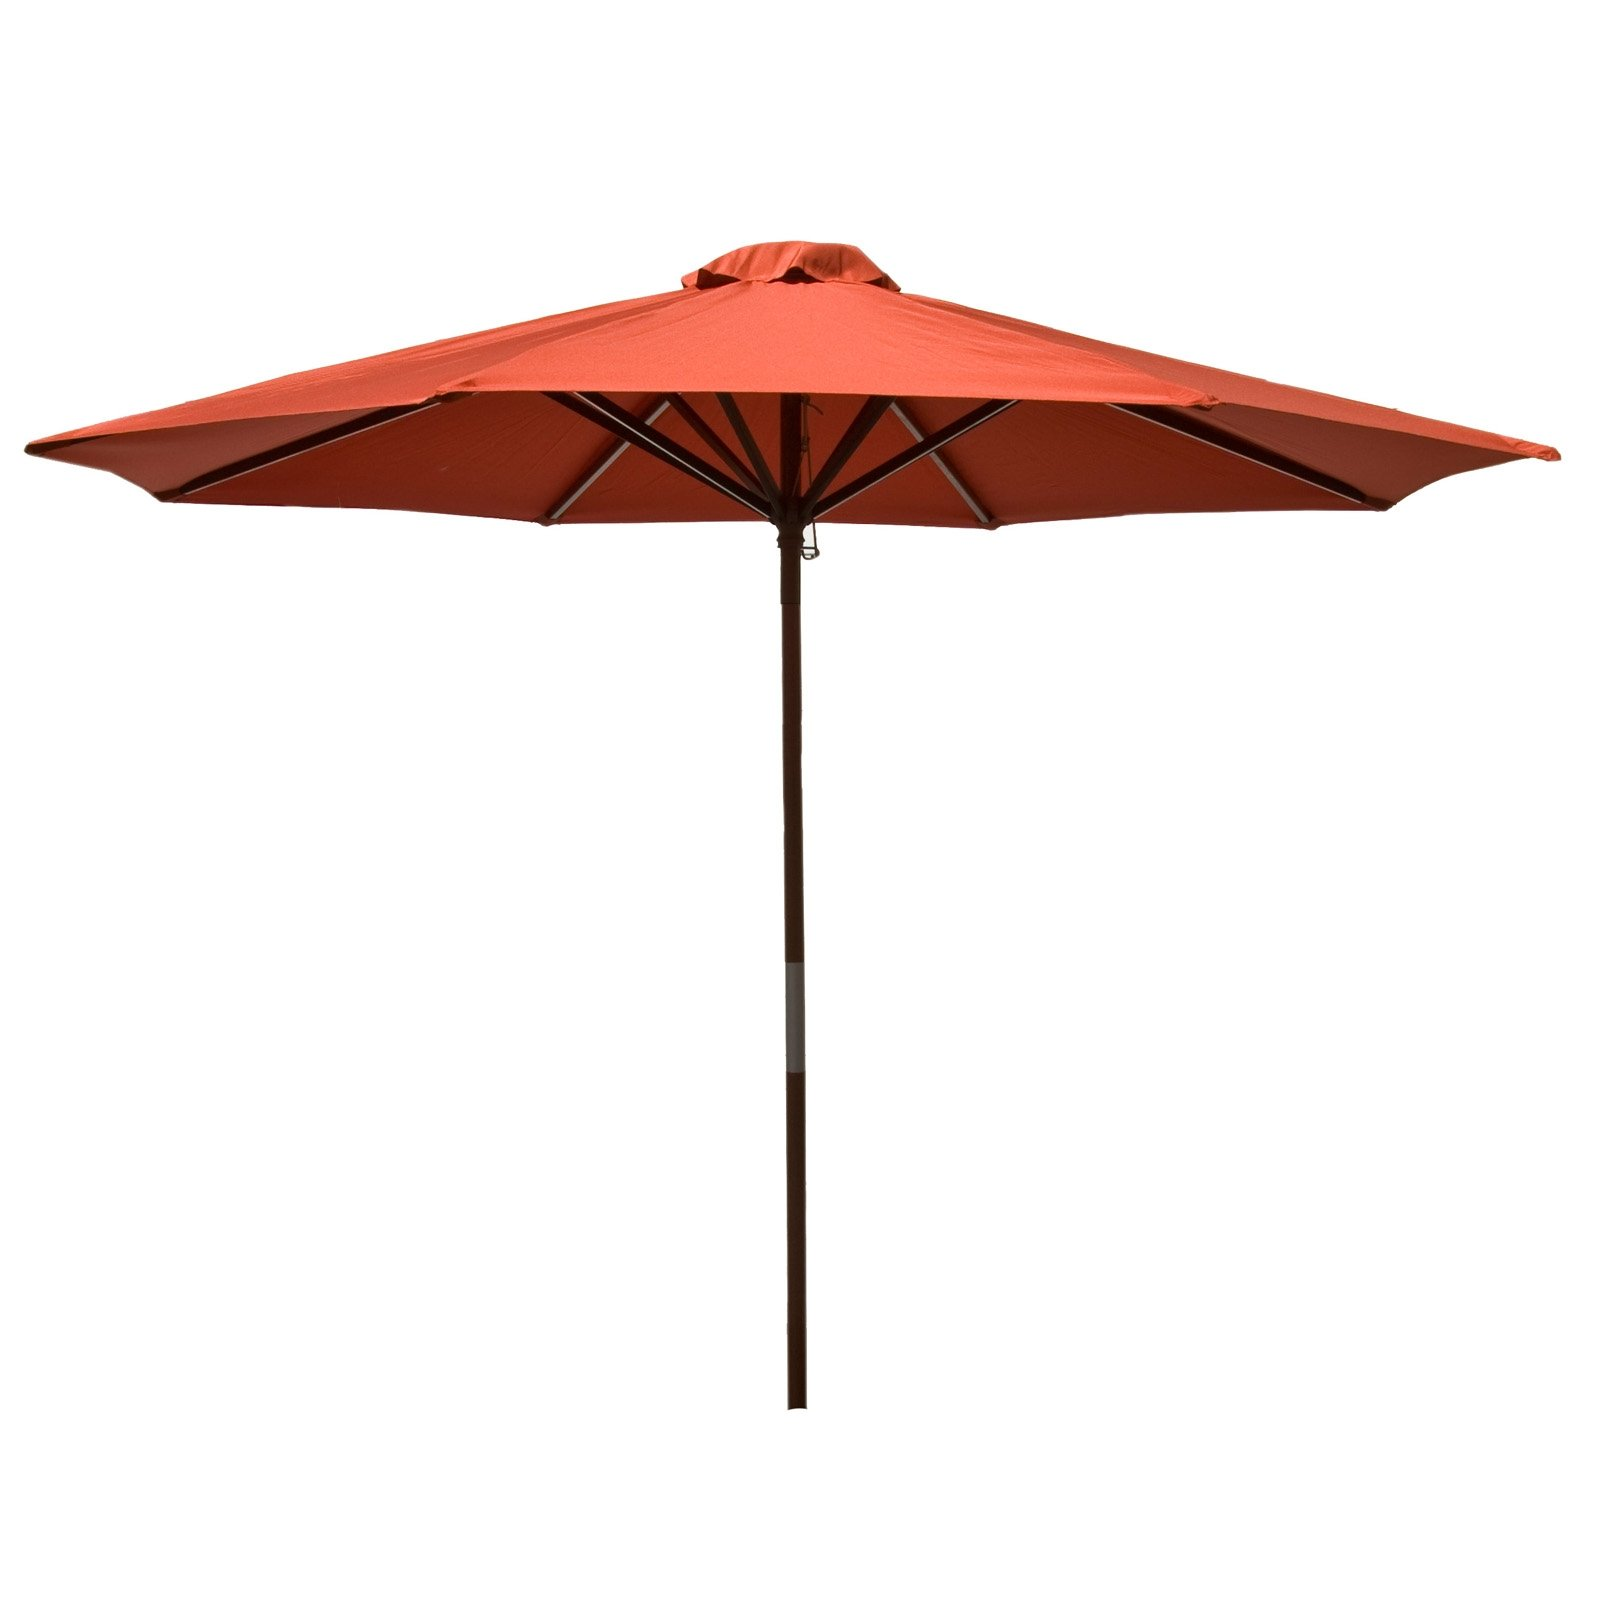 9ft Classic Outdoor Market Umbrella Home Patio Canopy Sun Shelter - Chili